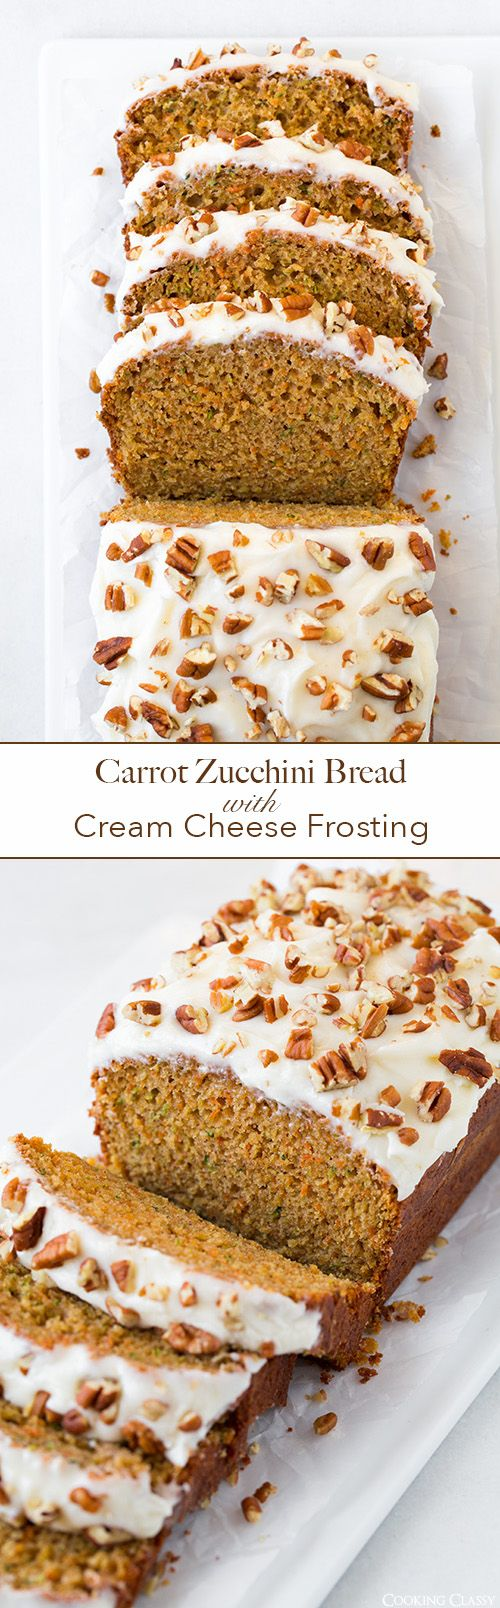 Carrot Zucchini Bread with Cream Cheese Frosting - LOVE this bread!